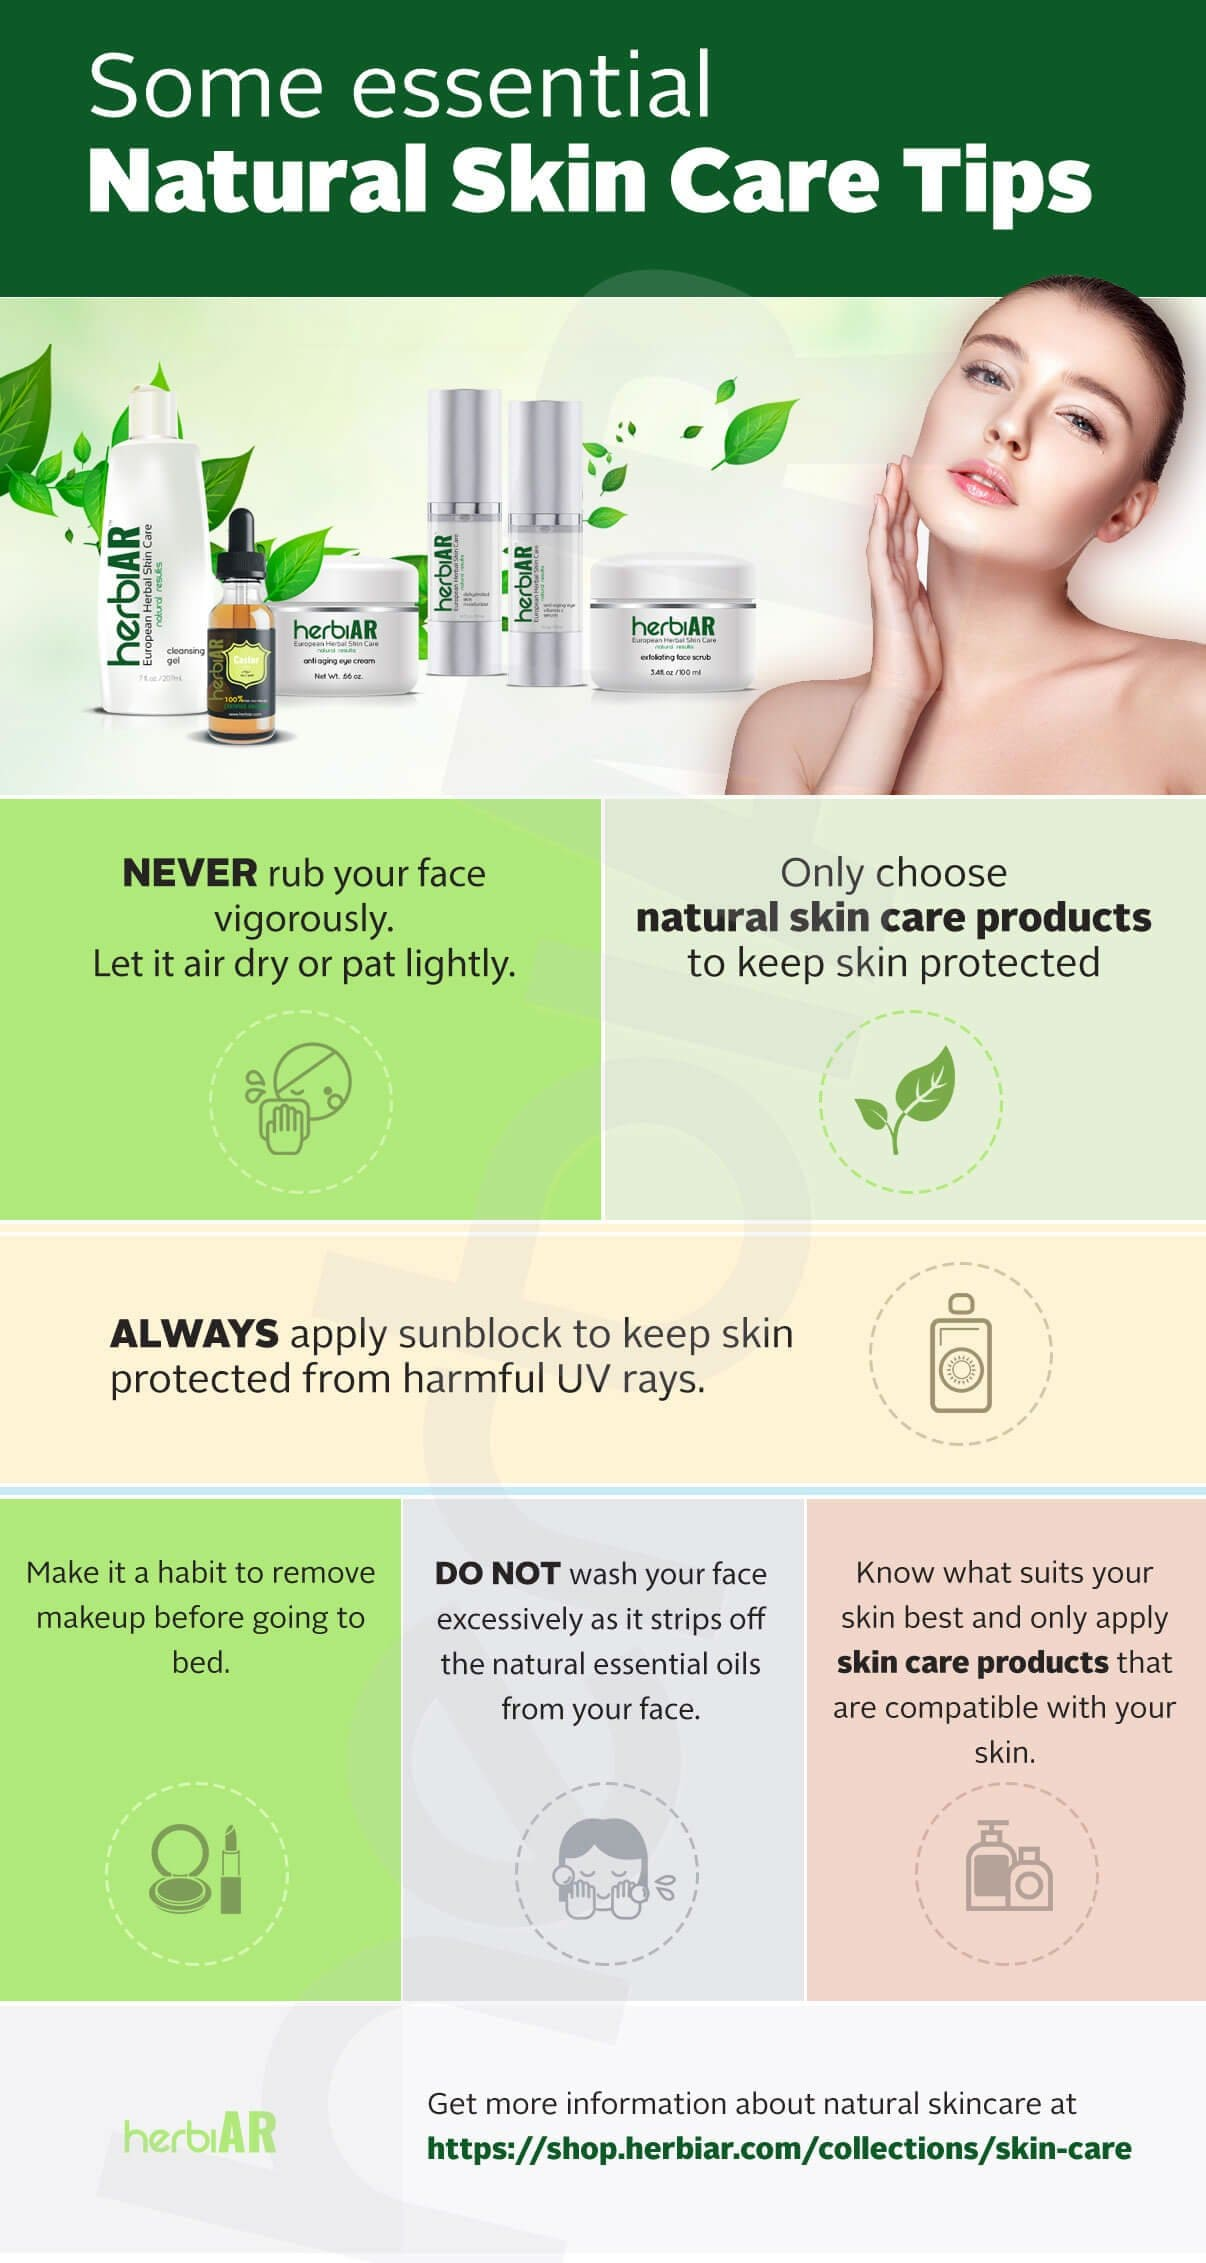 Some essential Natural Skin Care Tips